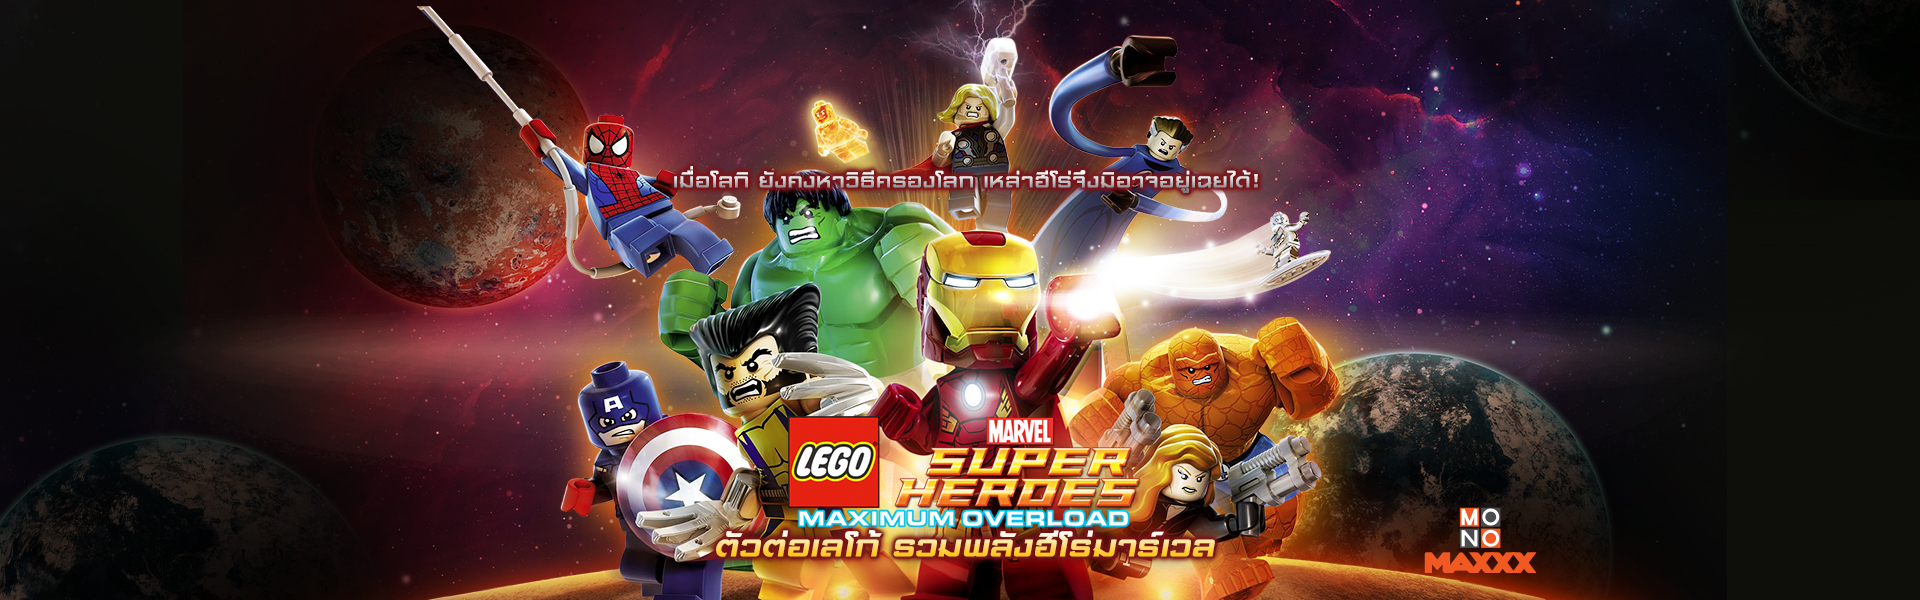 LEGO Marvel Super Heroes Maximum Overload (TV Special) S.01